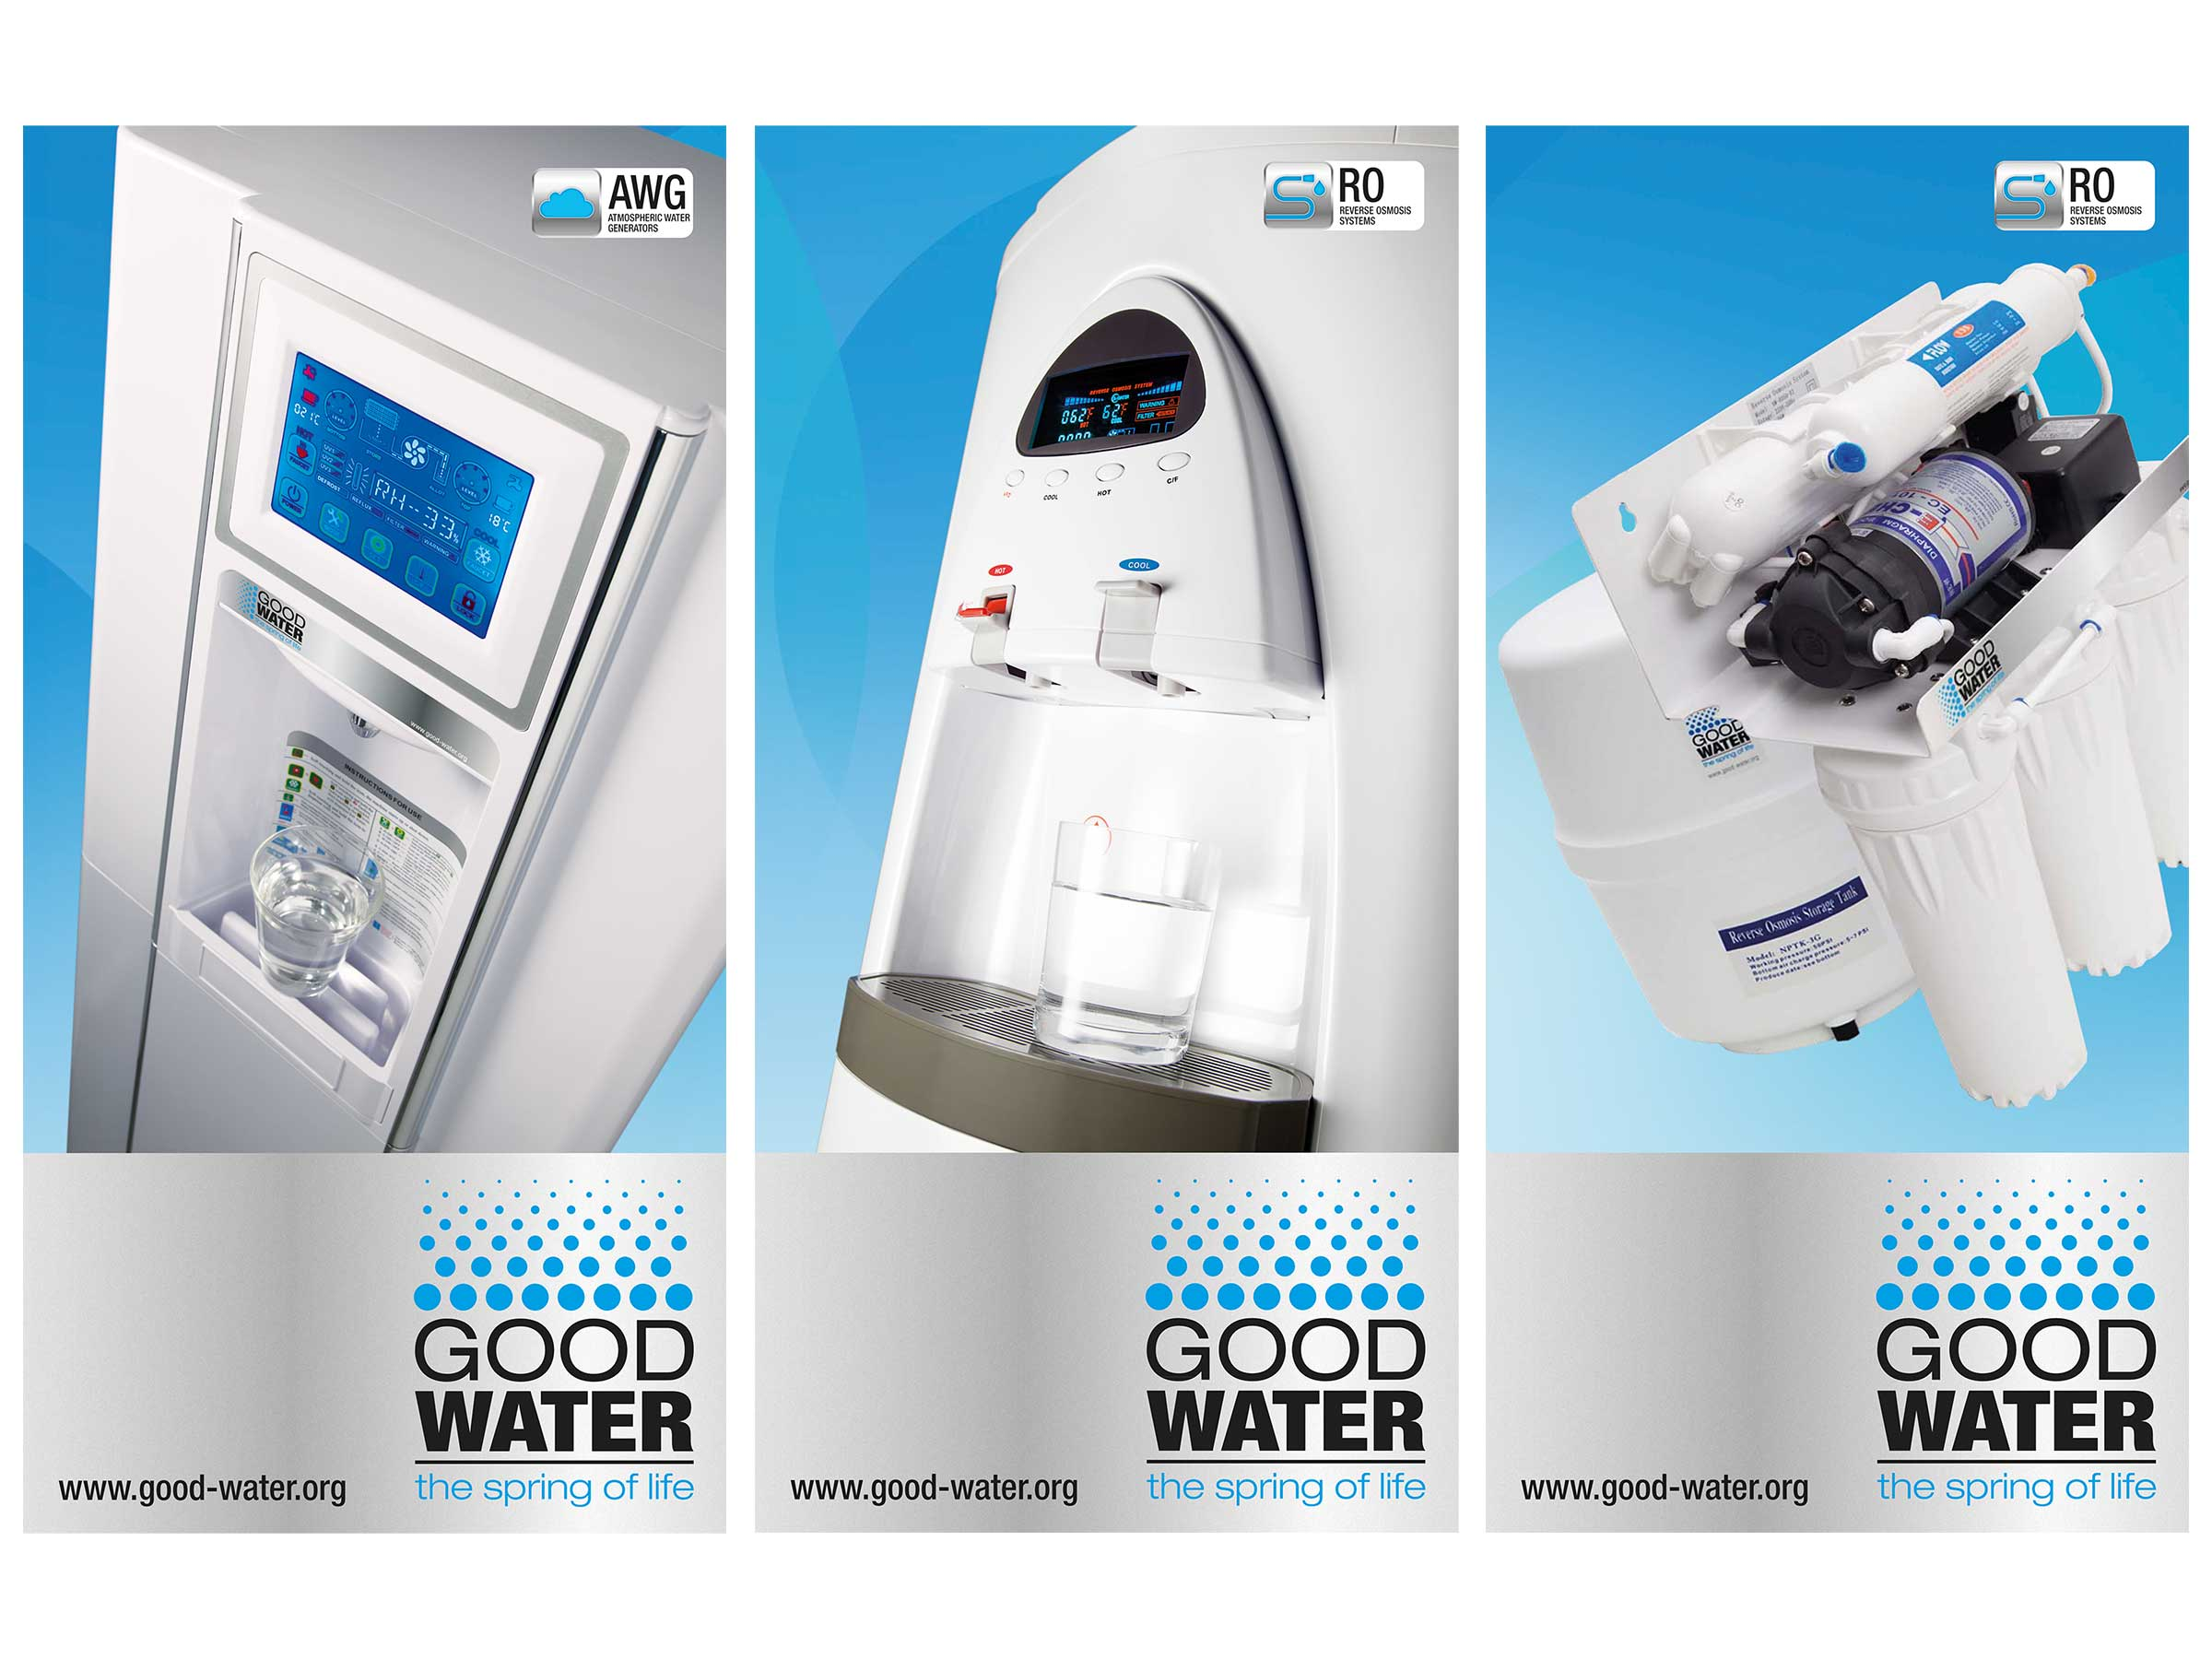 good-water-the-spring-of-life-water-technology-displays